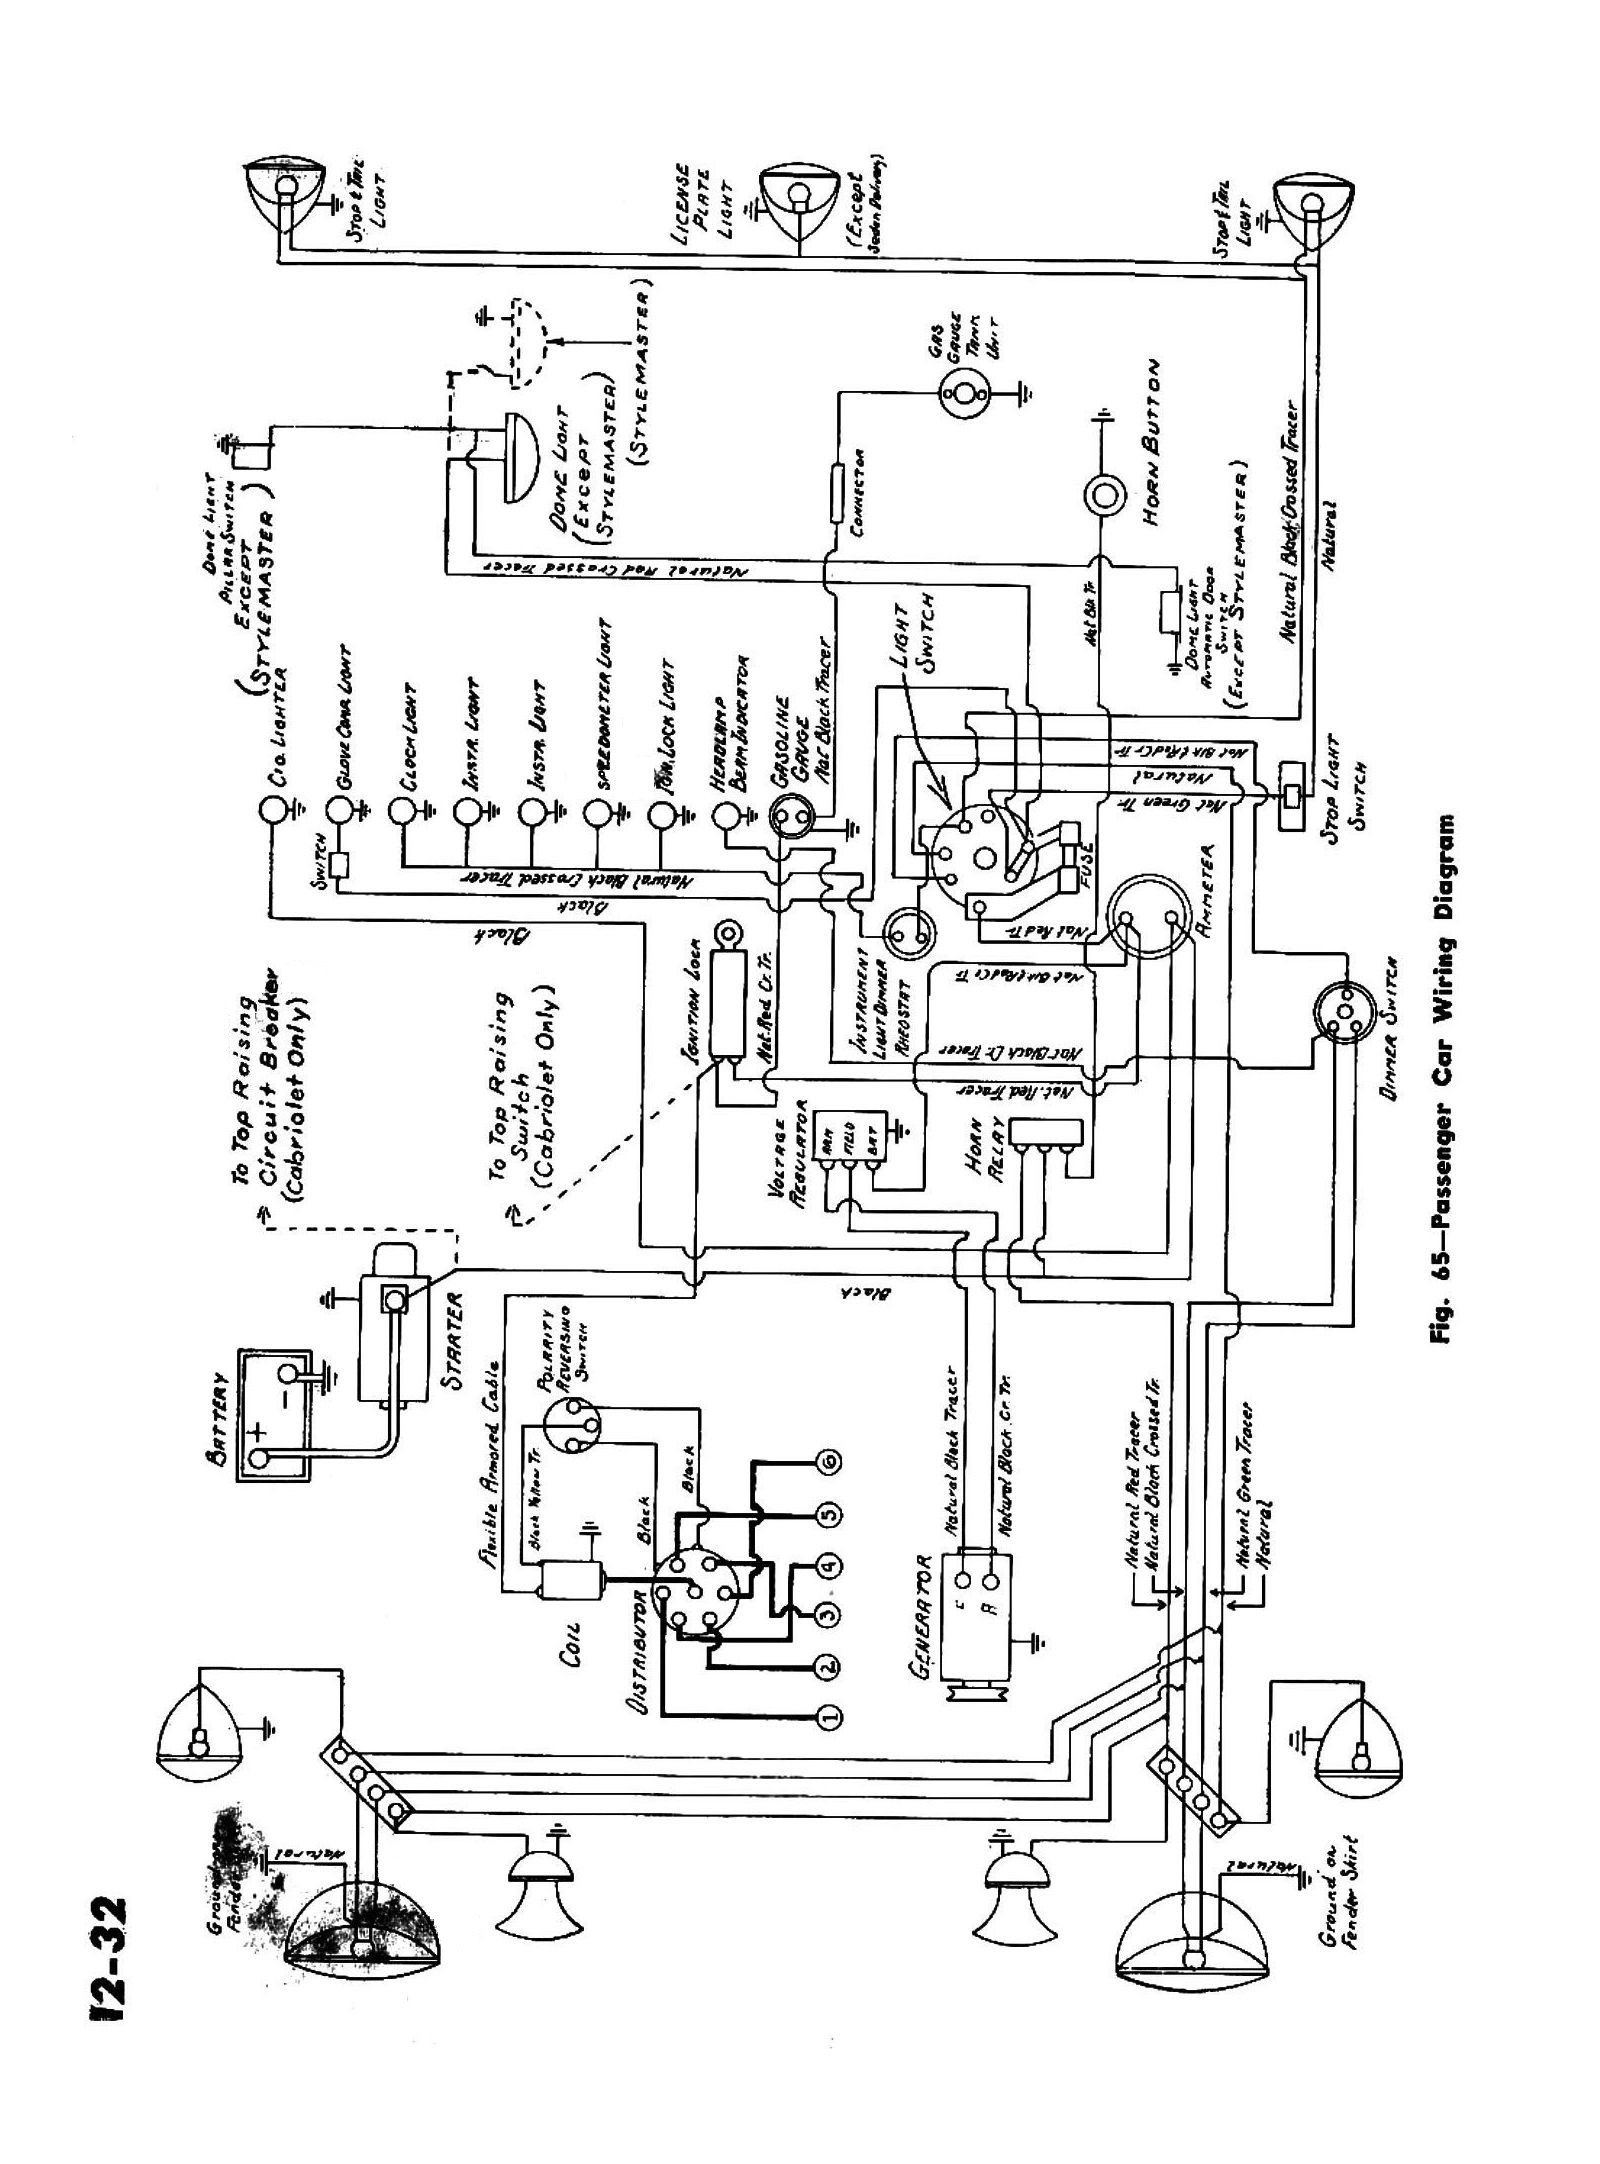 91 club car wiring diagram wiring diagram